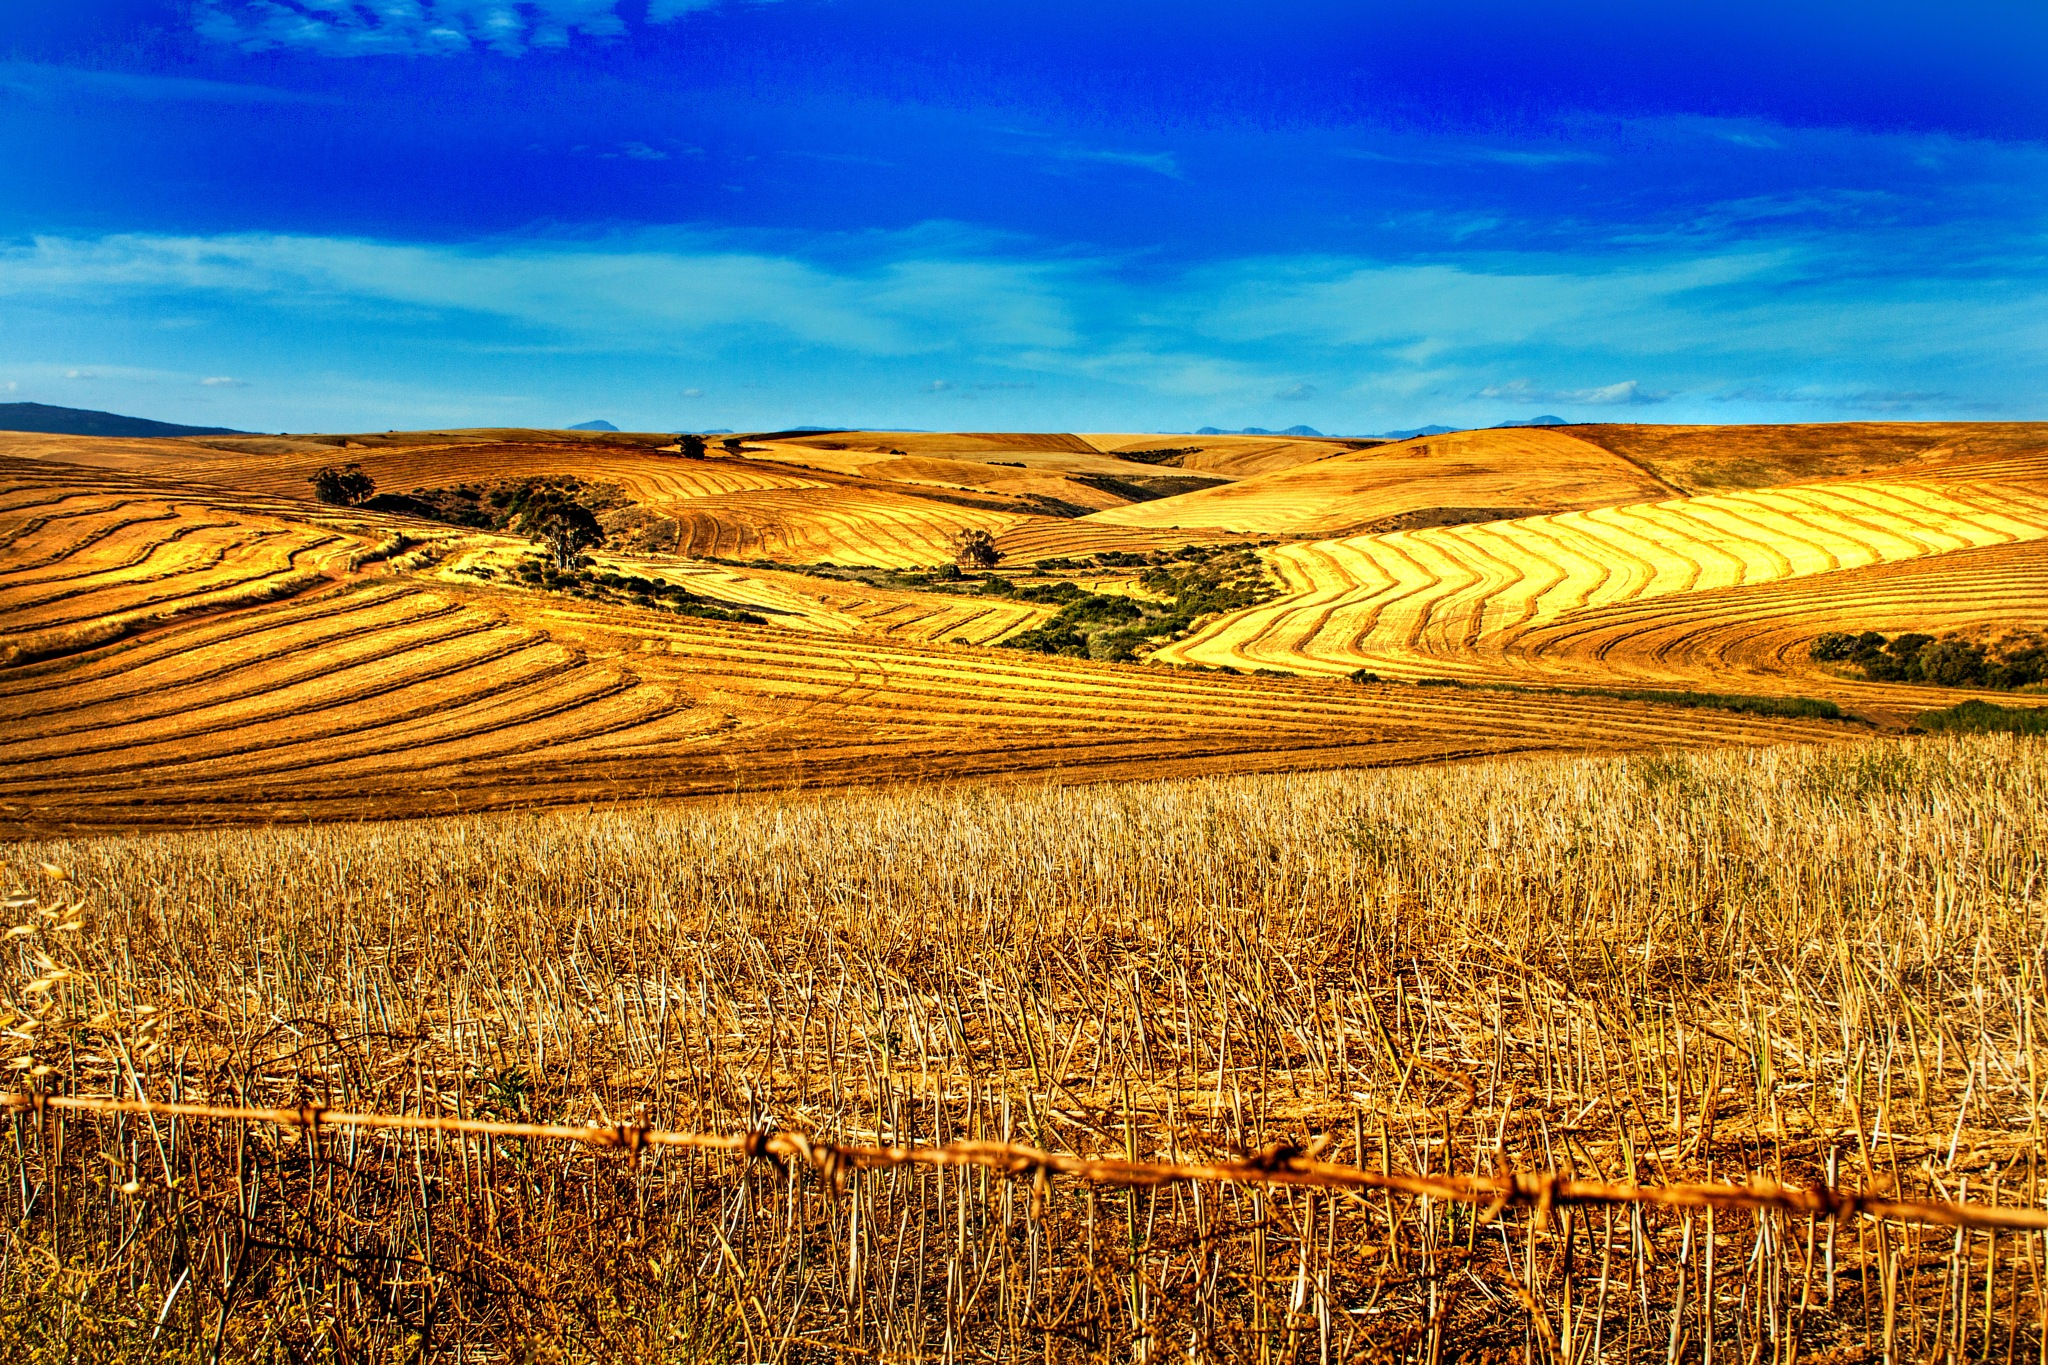 After the harvest #1 by Nauta Piscatorque